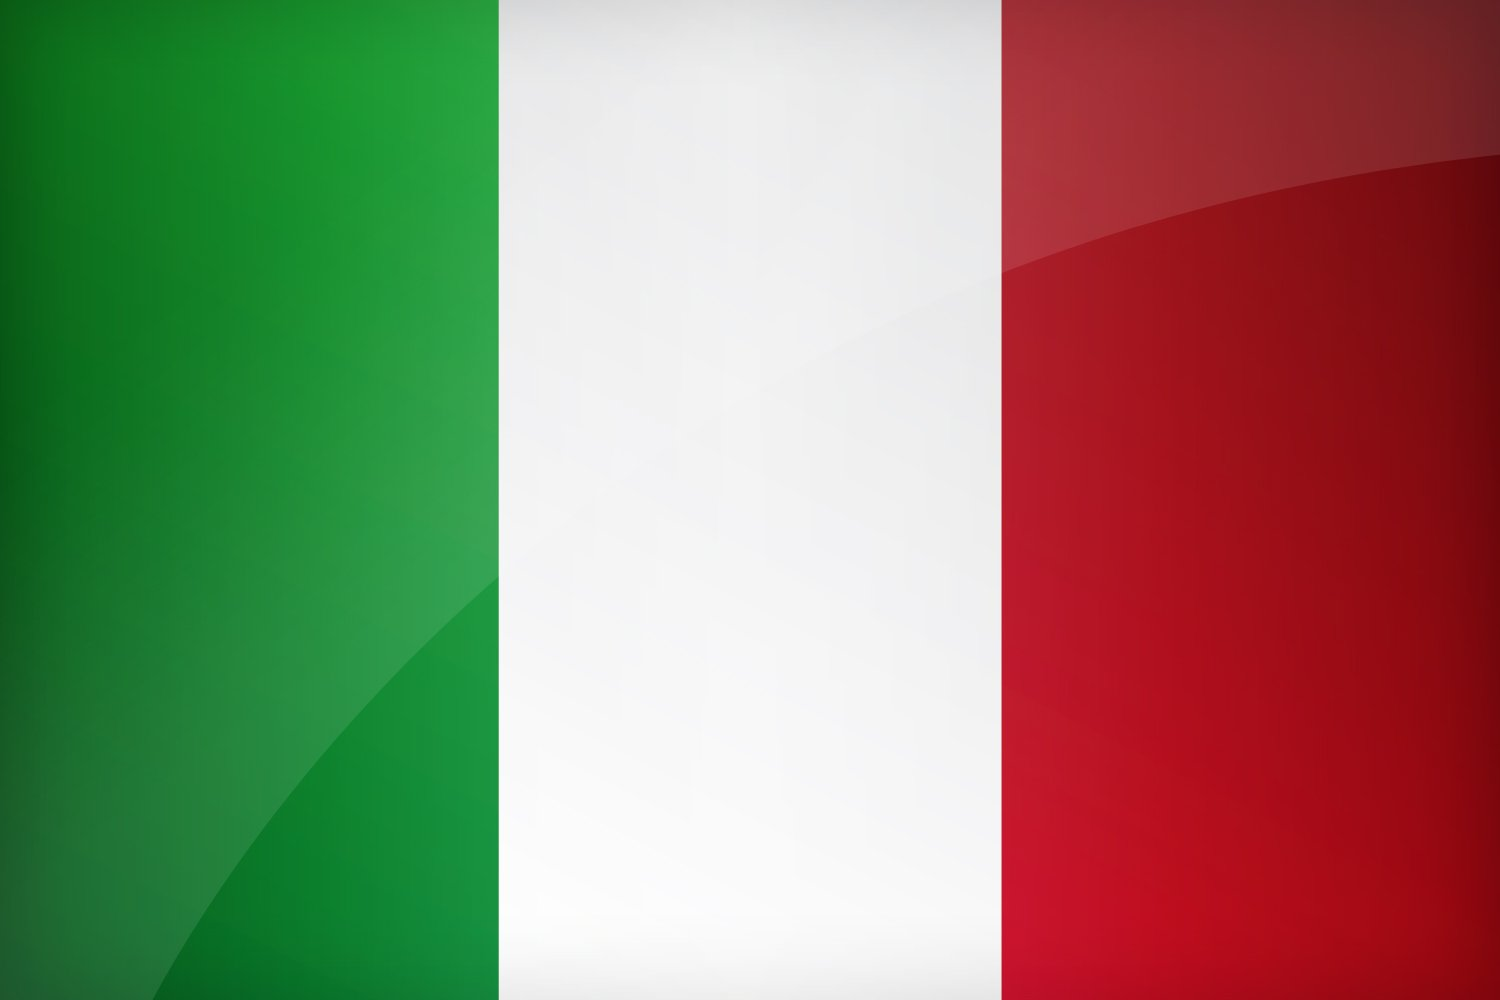 Italy Flag Wallpaper Iphone 45880 Ideluxe